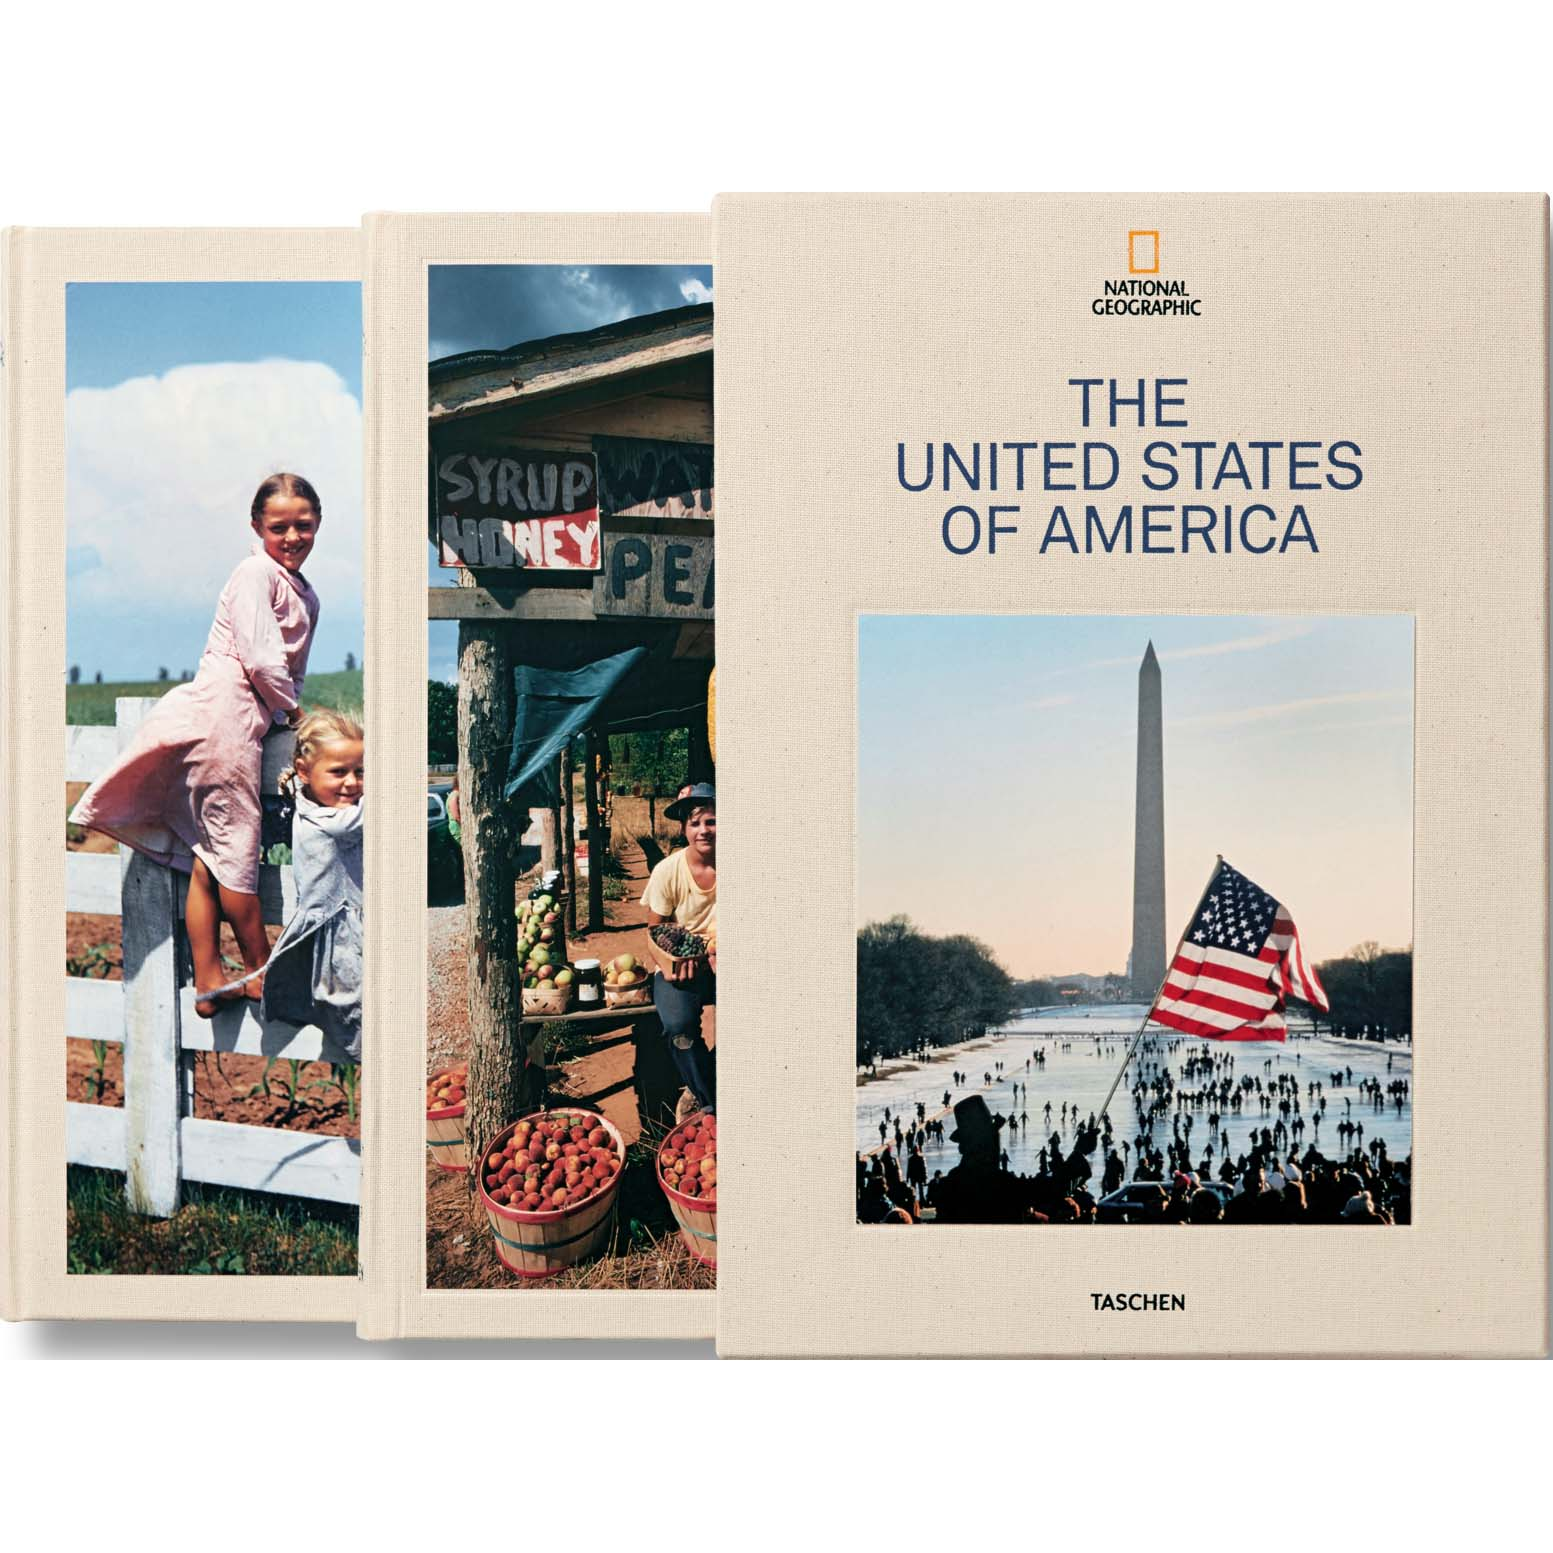 LIBRO THE UNITED STATES OF AMERICA. NATIONAL GEOGRAPHIC LIBROS